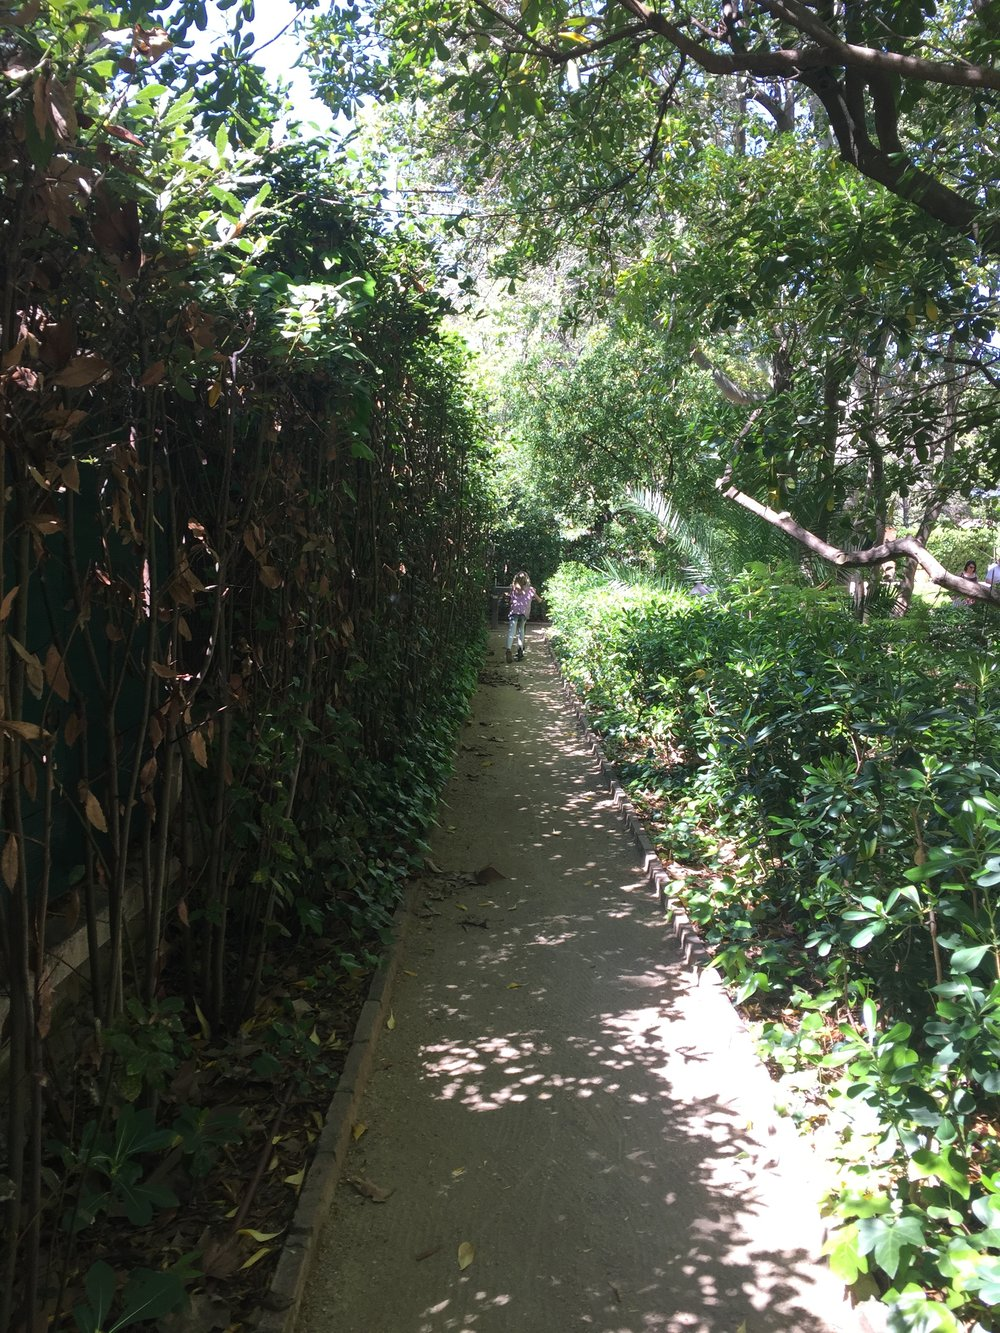 Exploring the beautiful winding paths of one of Barcelona's public parks, La Tamarita.